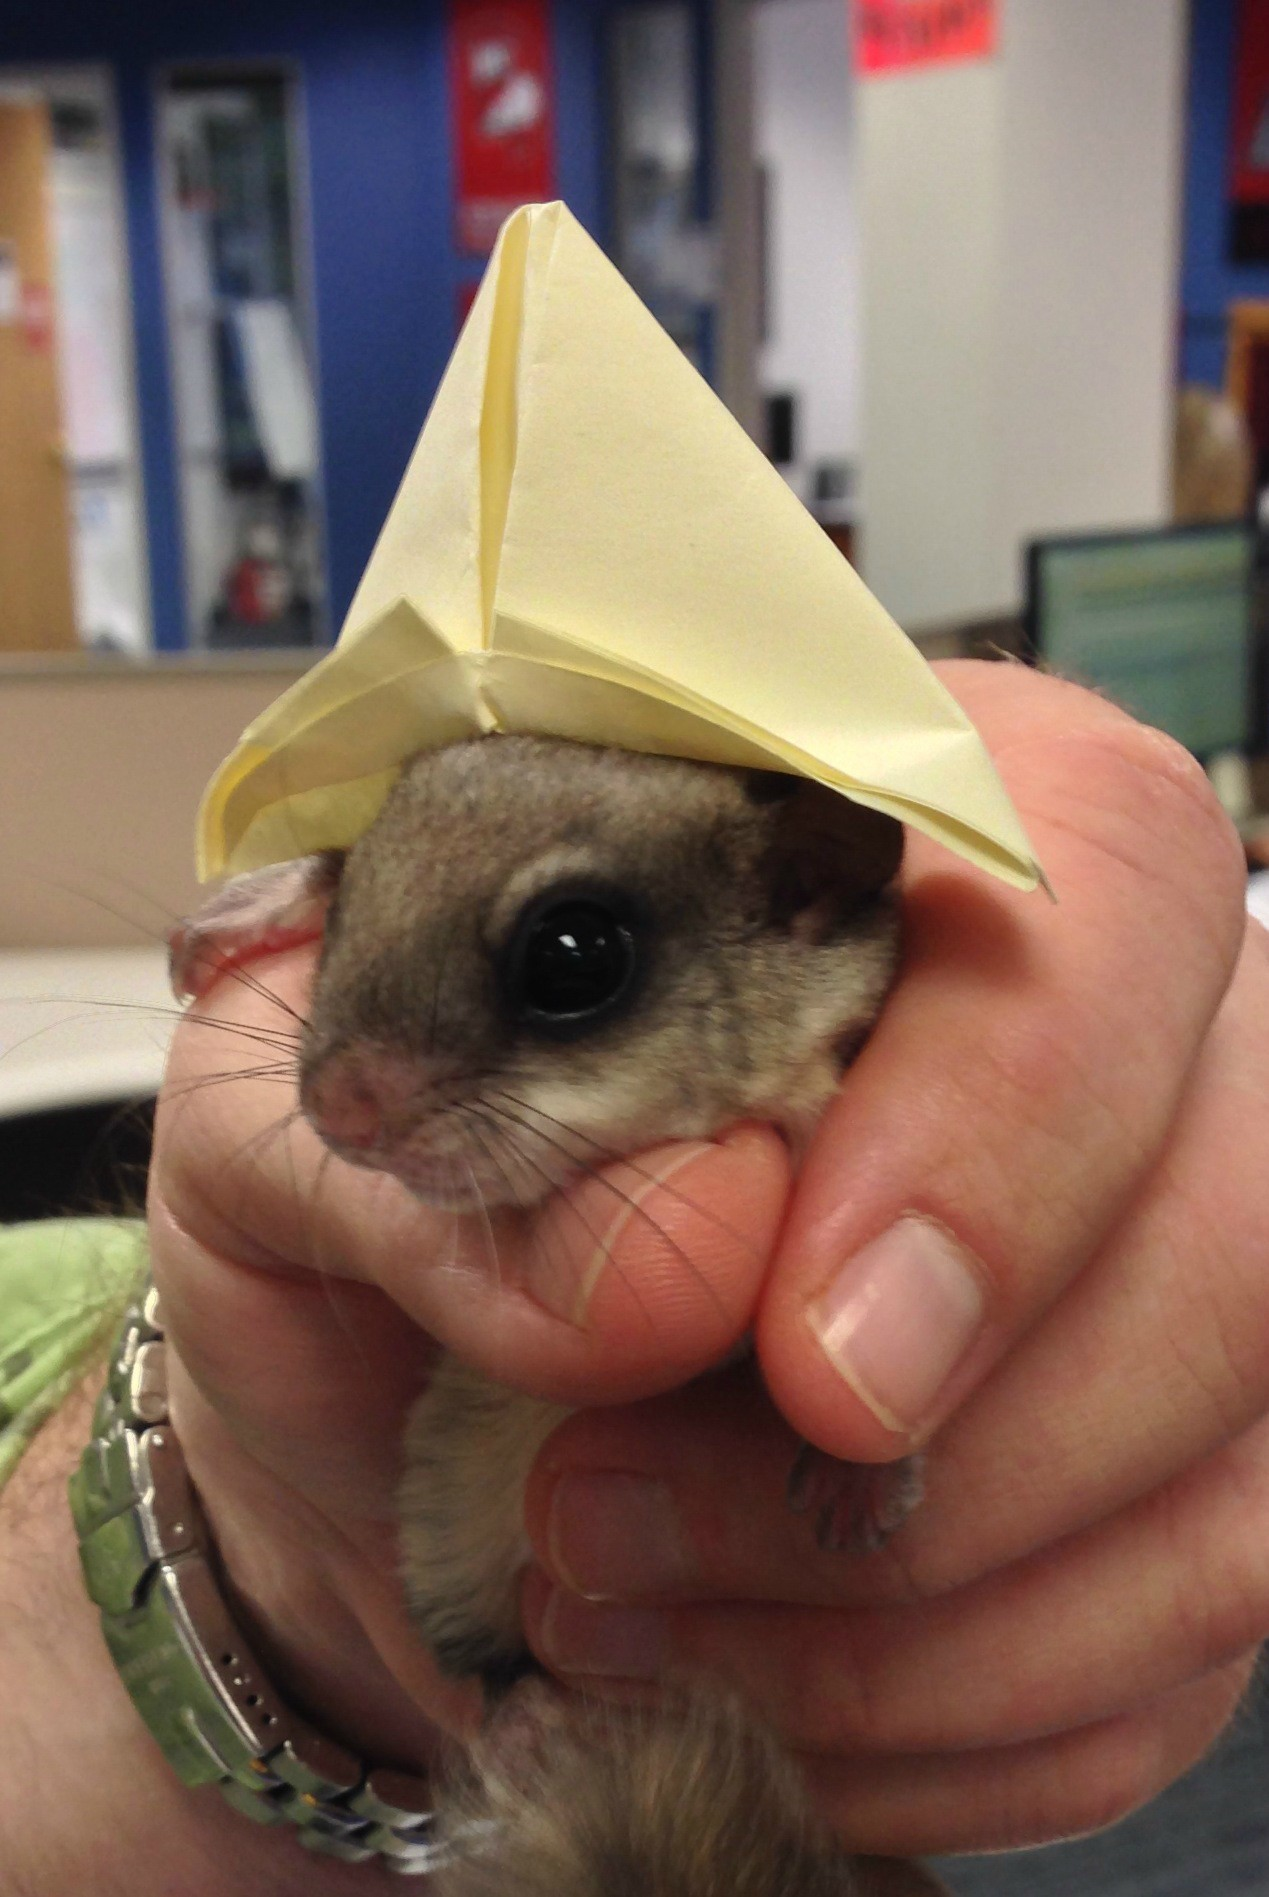 He Found a southern flying squirrel Lying Half Dead and Did the Most amazing thing